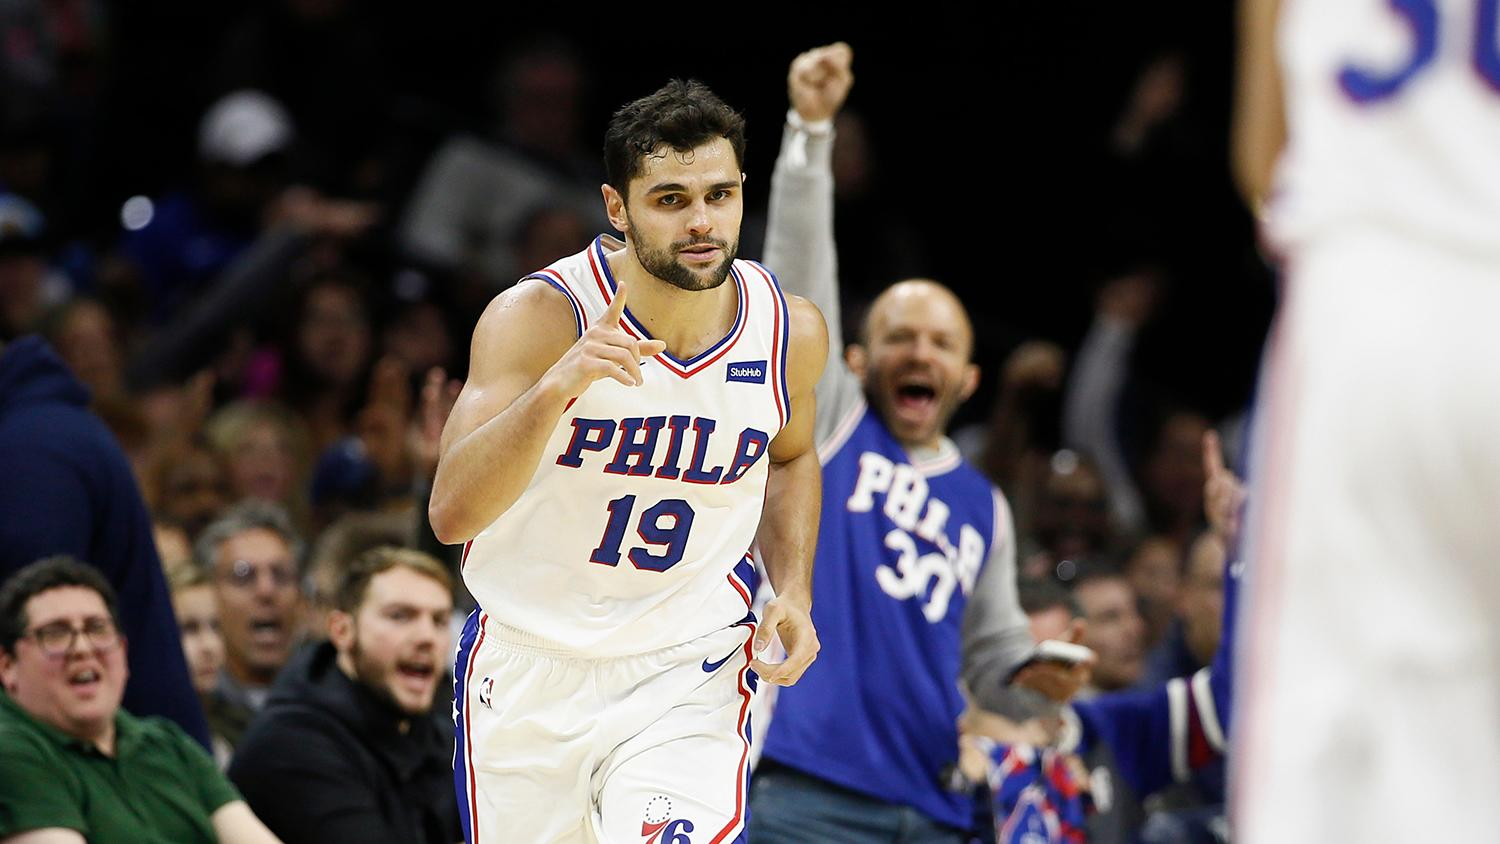 Sixers return home with win over Hornets